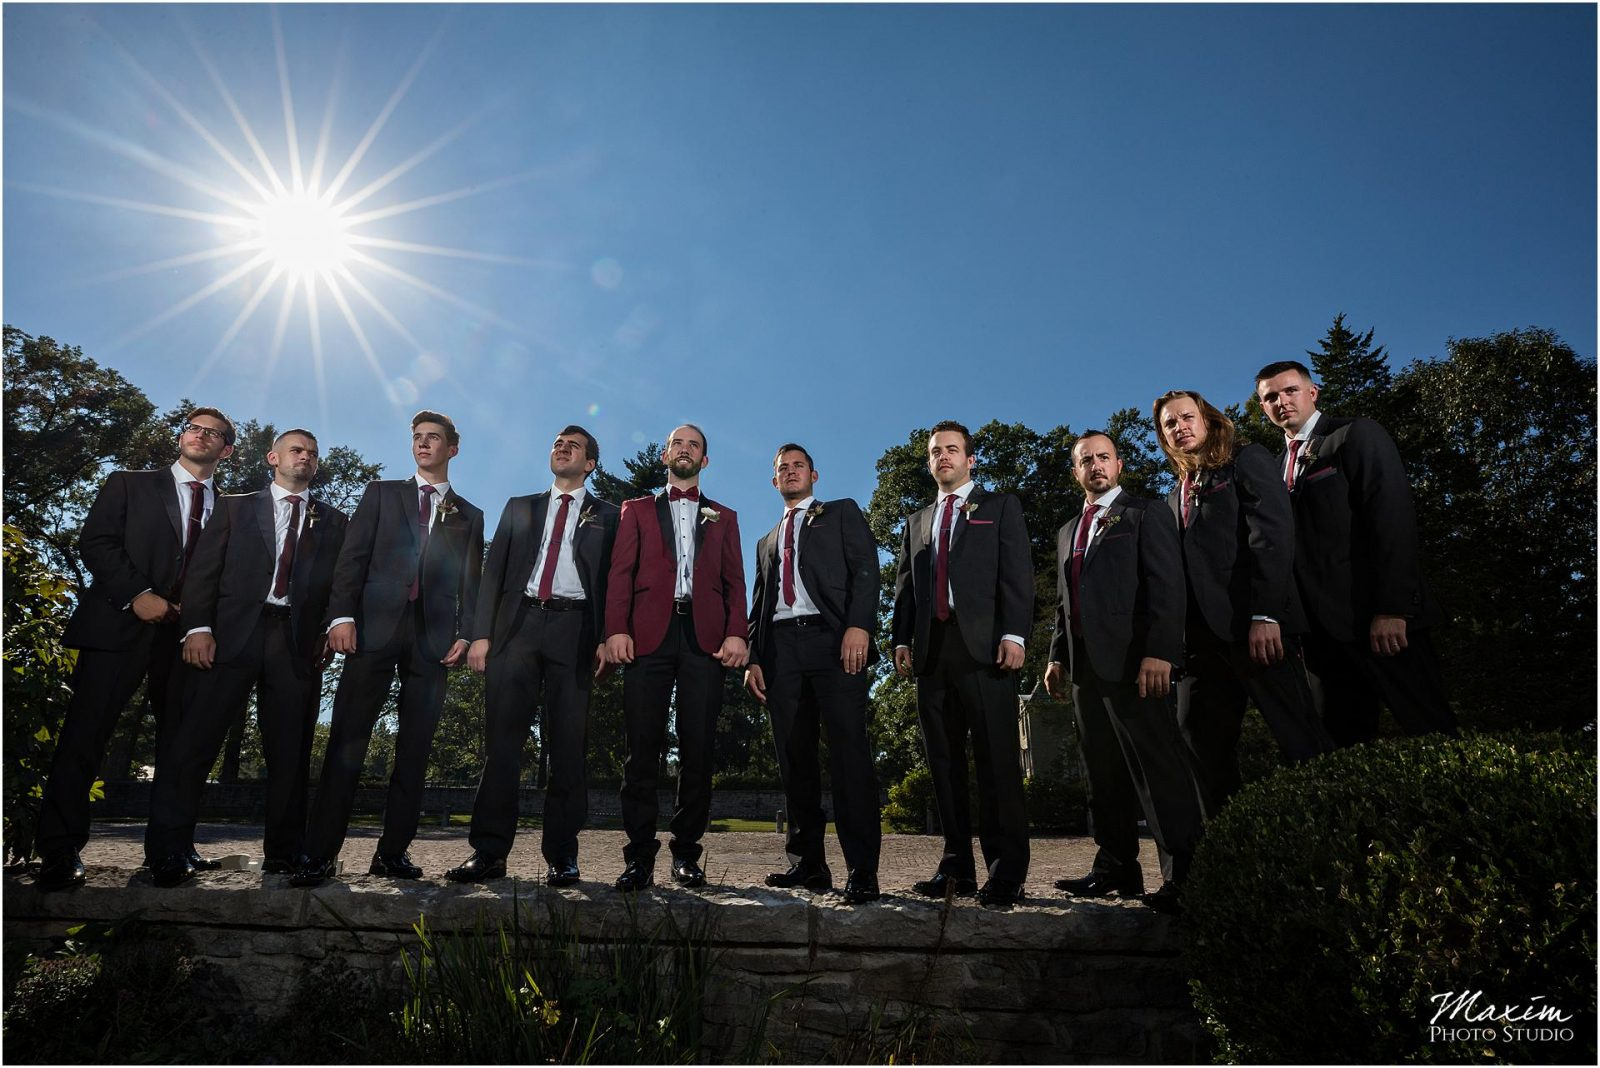 Greenacres Art Center, Cincinnati Wedding, Cincinnati Groom, Cincinnati Groomsmen